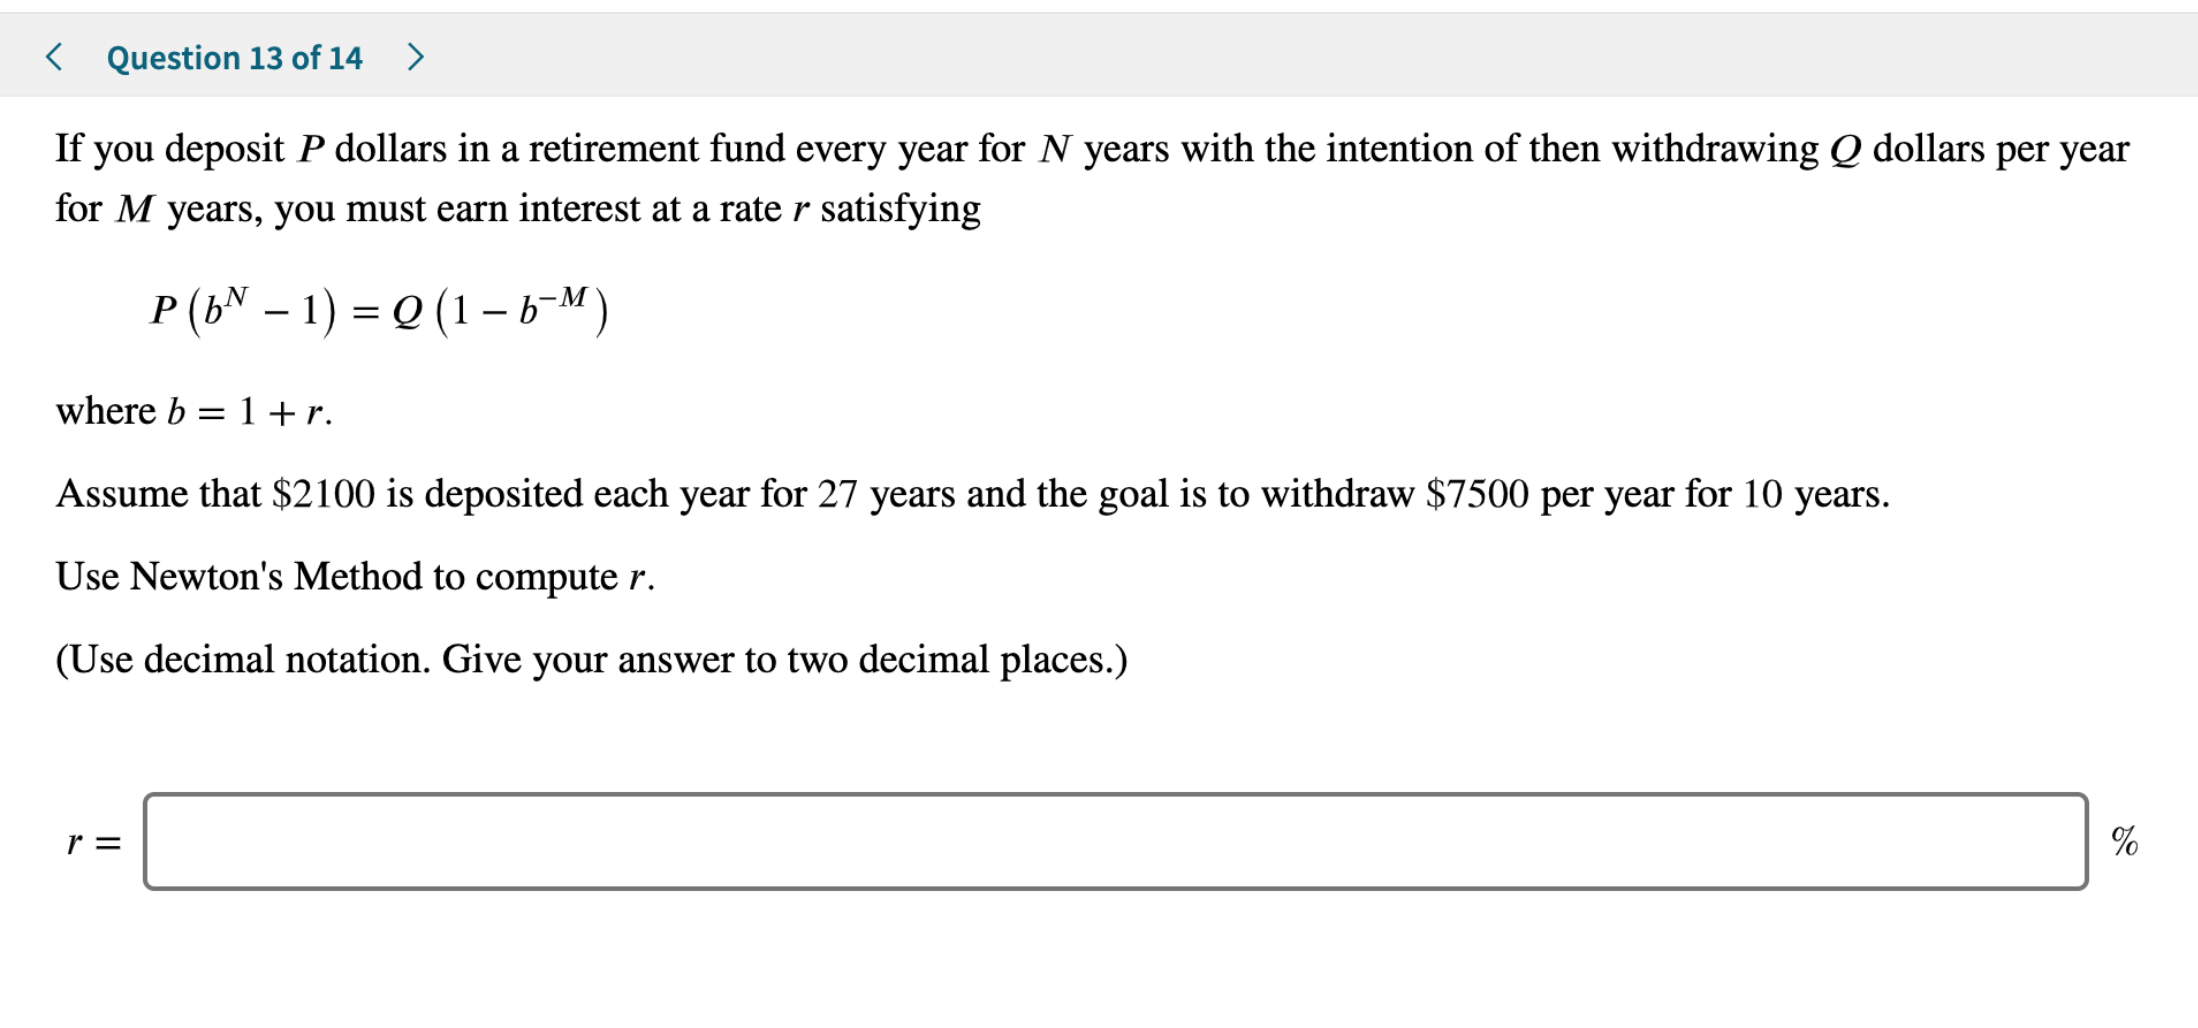 Question 13 of 14 > If you deposit P dollars in a retirement fund every year for N years with the intention of then withdrawing Q dollars per year for M years, you must earn interest at a rater satisfying P (bN - 1) (1-b-M) where b 1 + r Assume that $2100 is deposited each year for 27 years and the goal is to withdraw $7500 per year for 10 years Use Newton's Method to compute r. (Use decimal notation. Give your answer to two decimal places.) r = 96